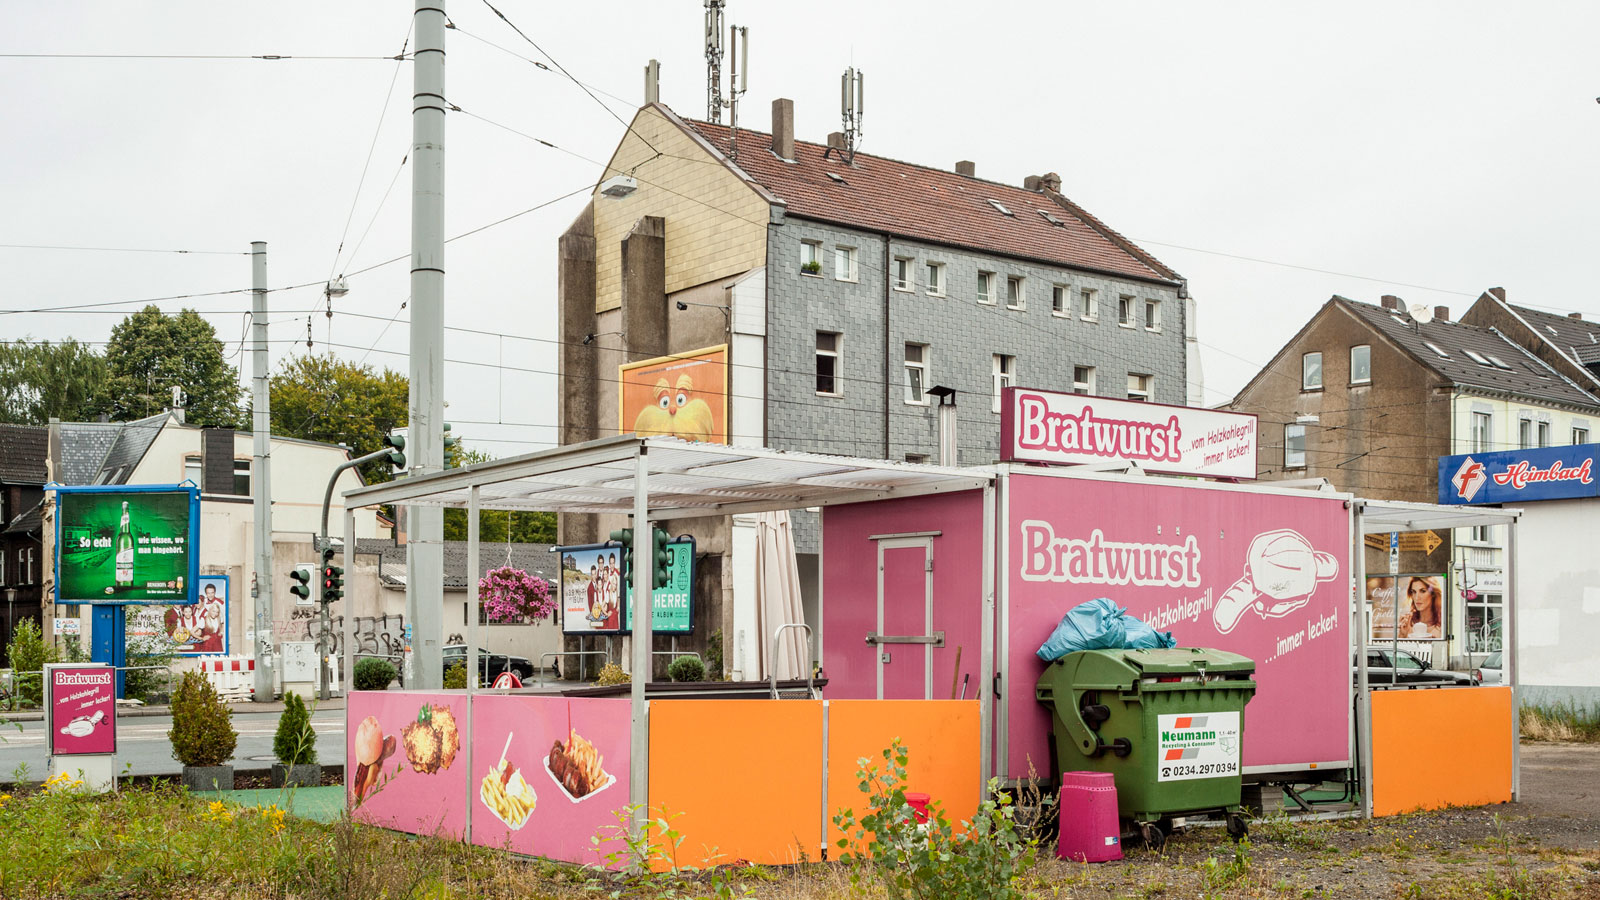 HAUS Am KLEISTPARK | Peter Bialobrzeski »Die Zweite Heimat / The Second Home«